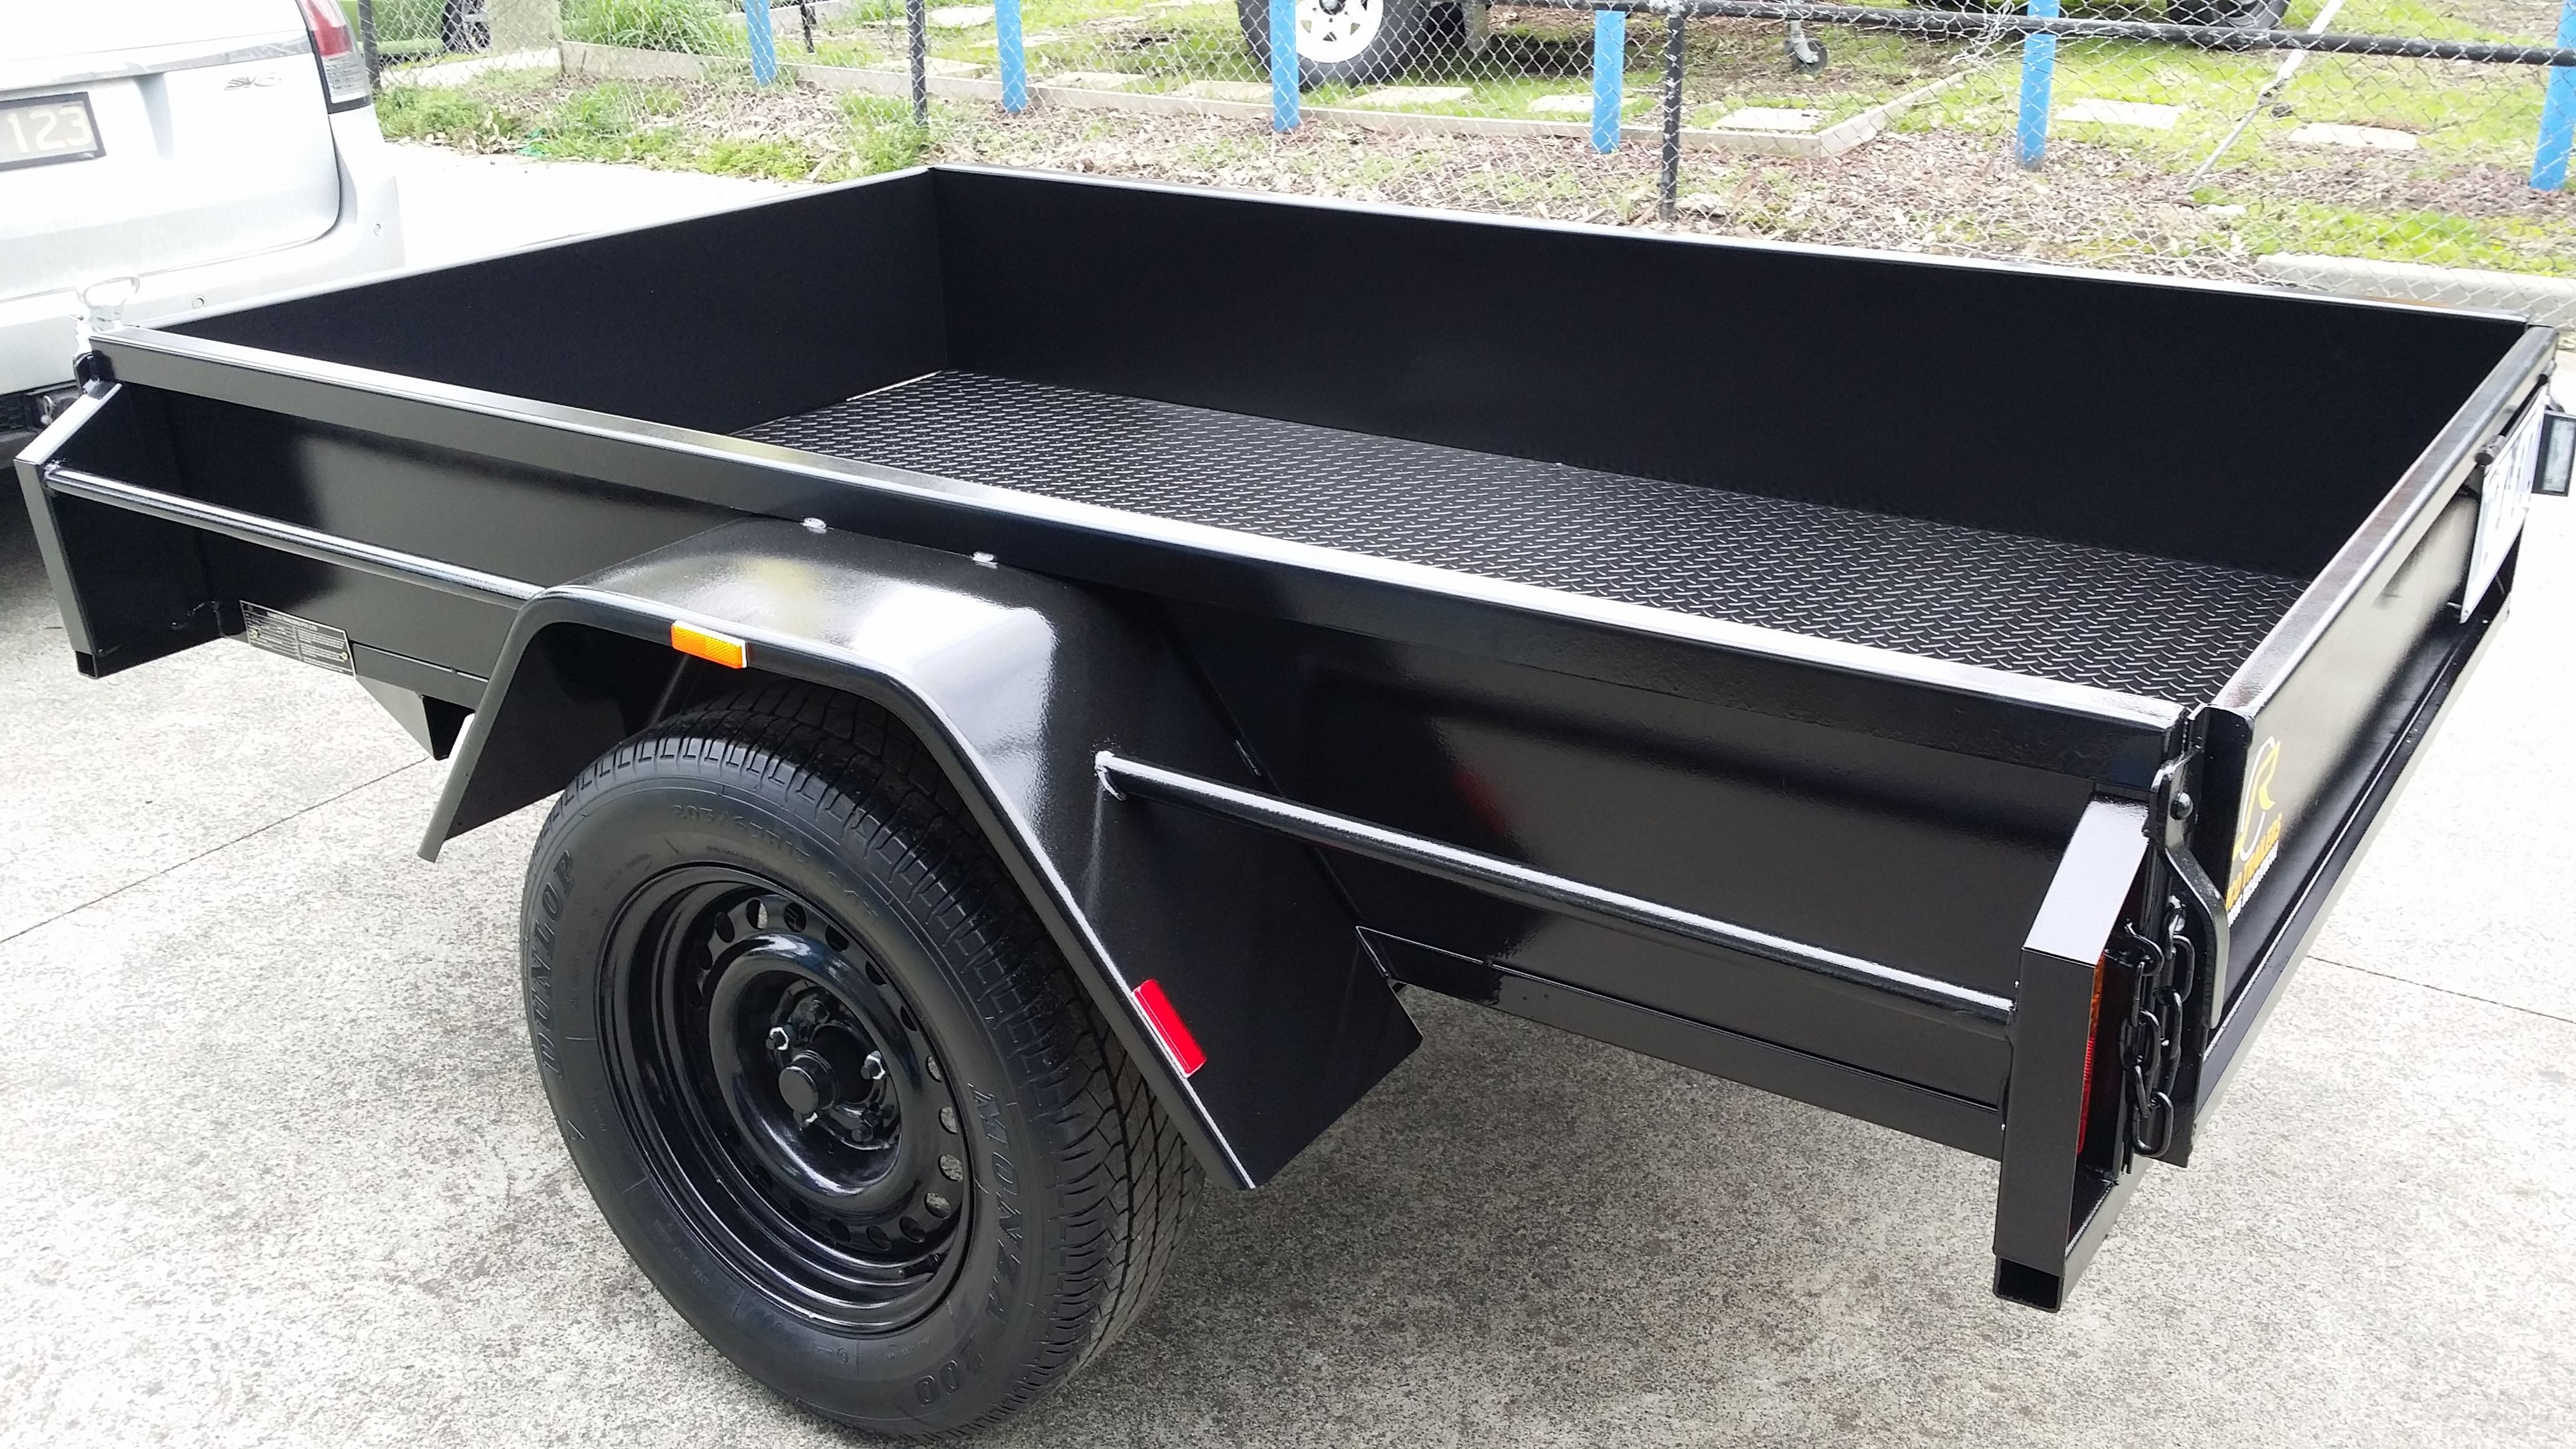 You can choose a box trailer for value transportations. These box trailers can transport consumable and noon consumable goods. For that, you must look for good box trailers for sale in Sydney.